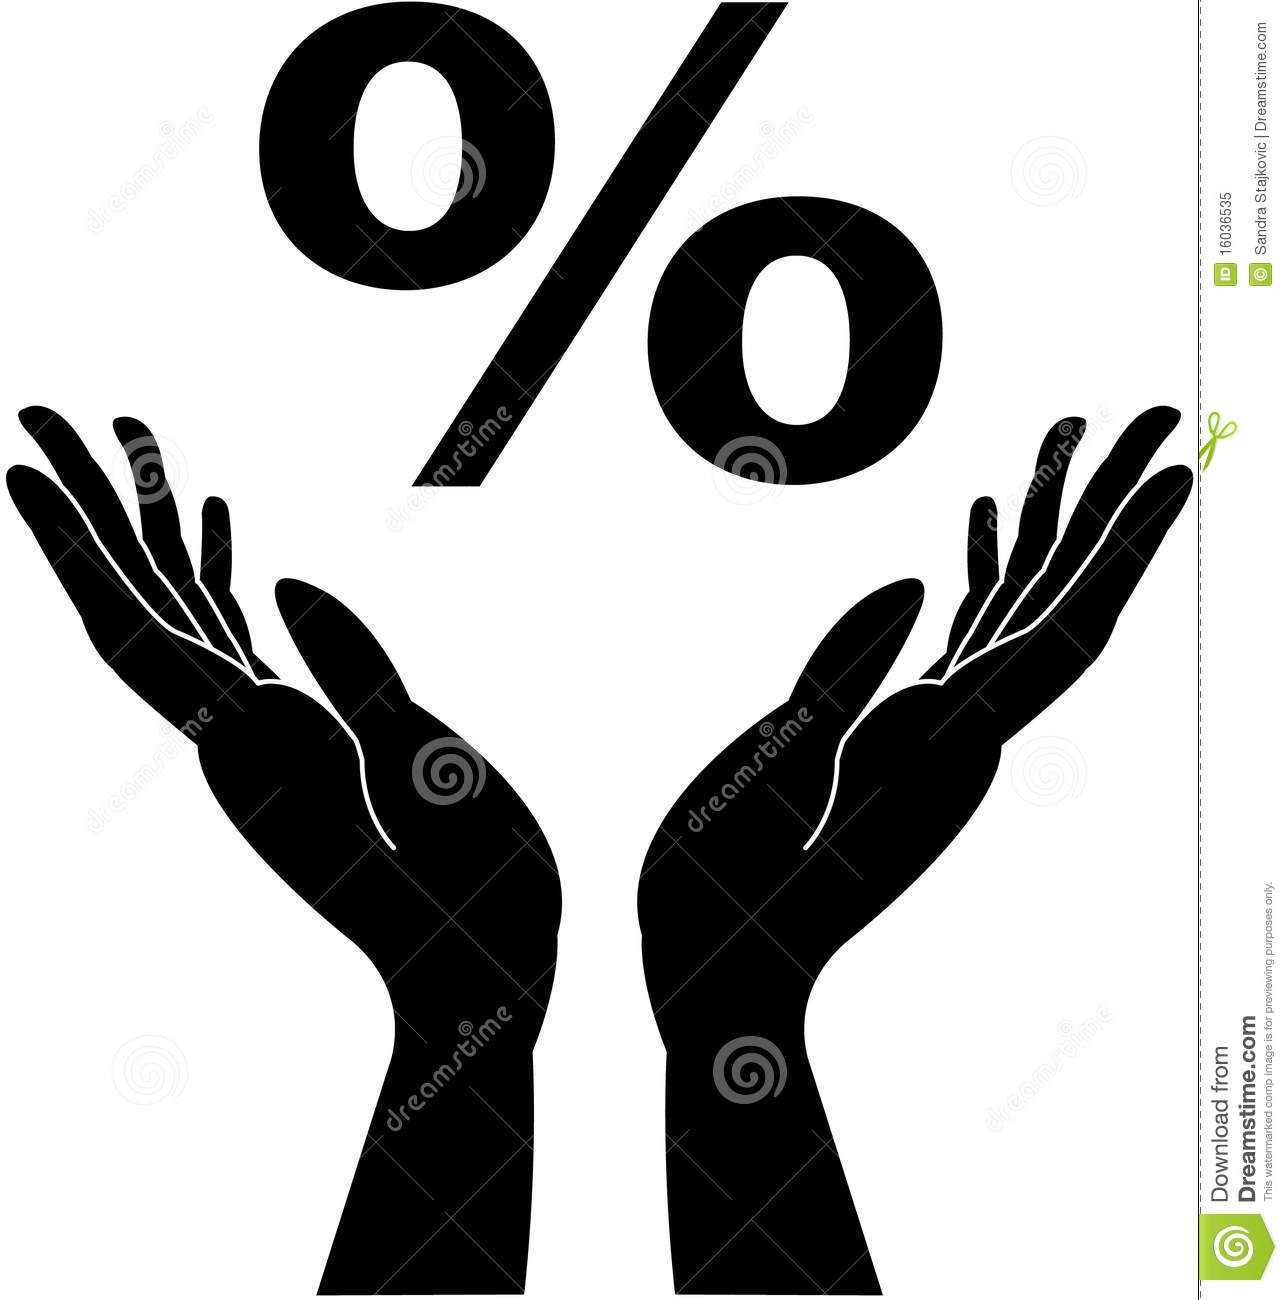 Caring Hands And Percentage Sign Royalty Free Stock Photo.